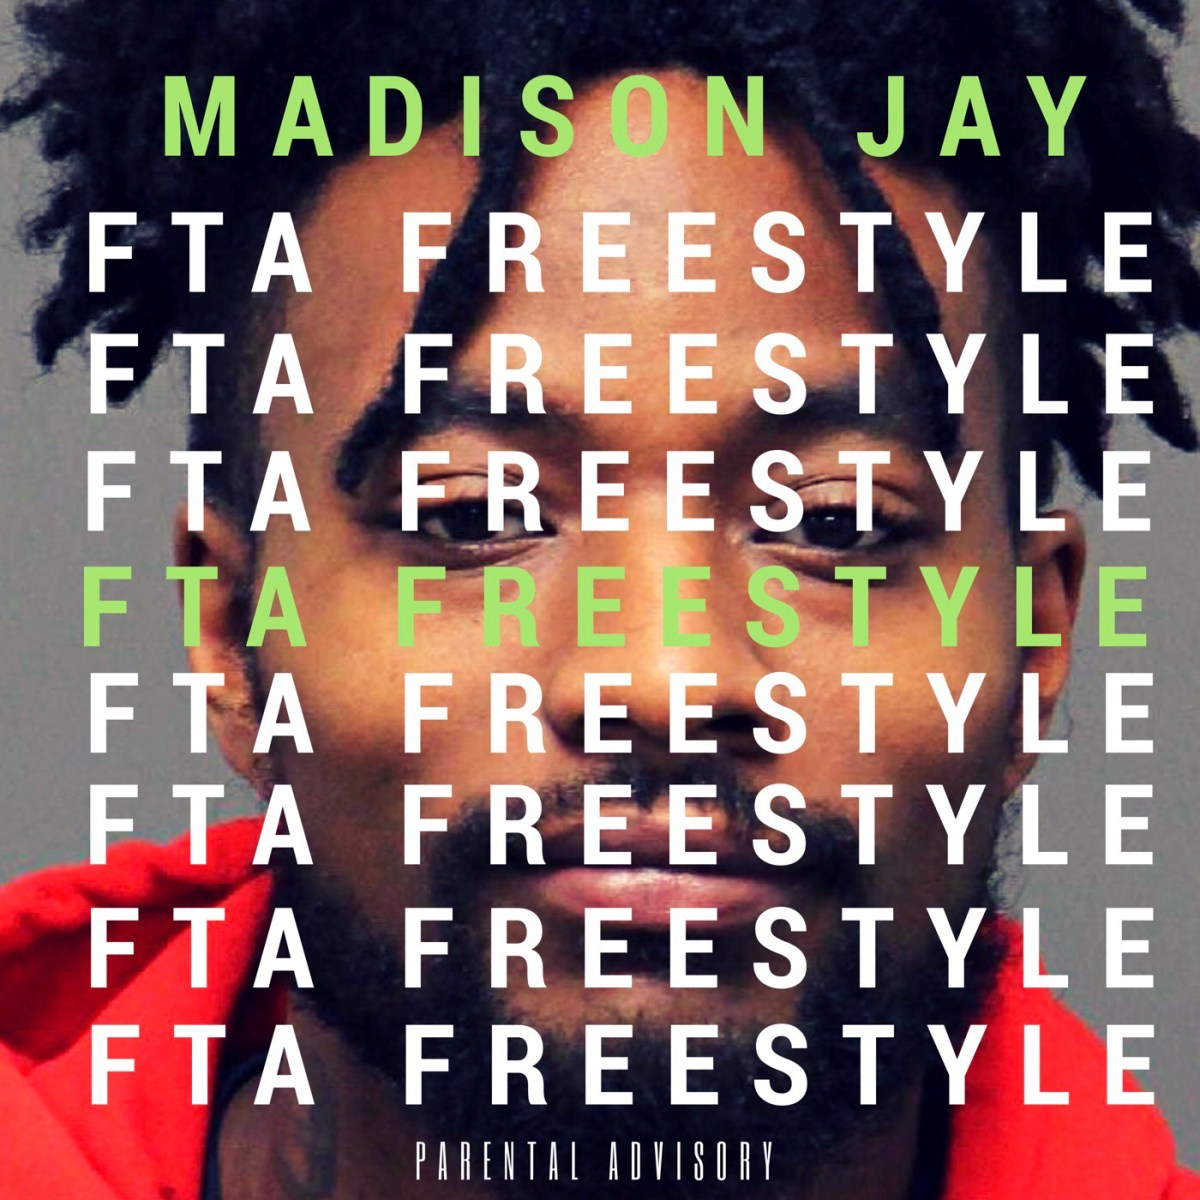 Madison Jay (@TheMadisonJay) - FTA Freestyle